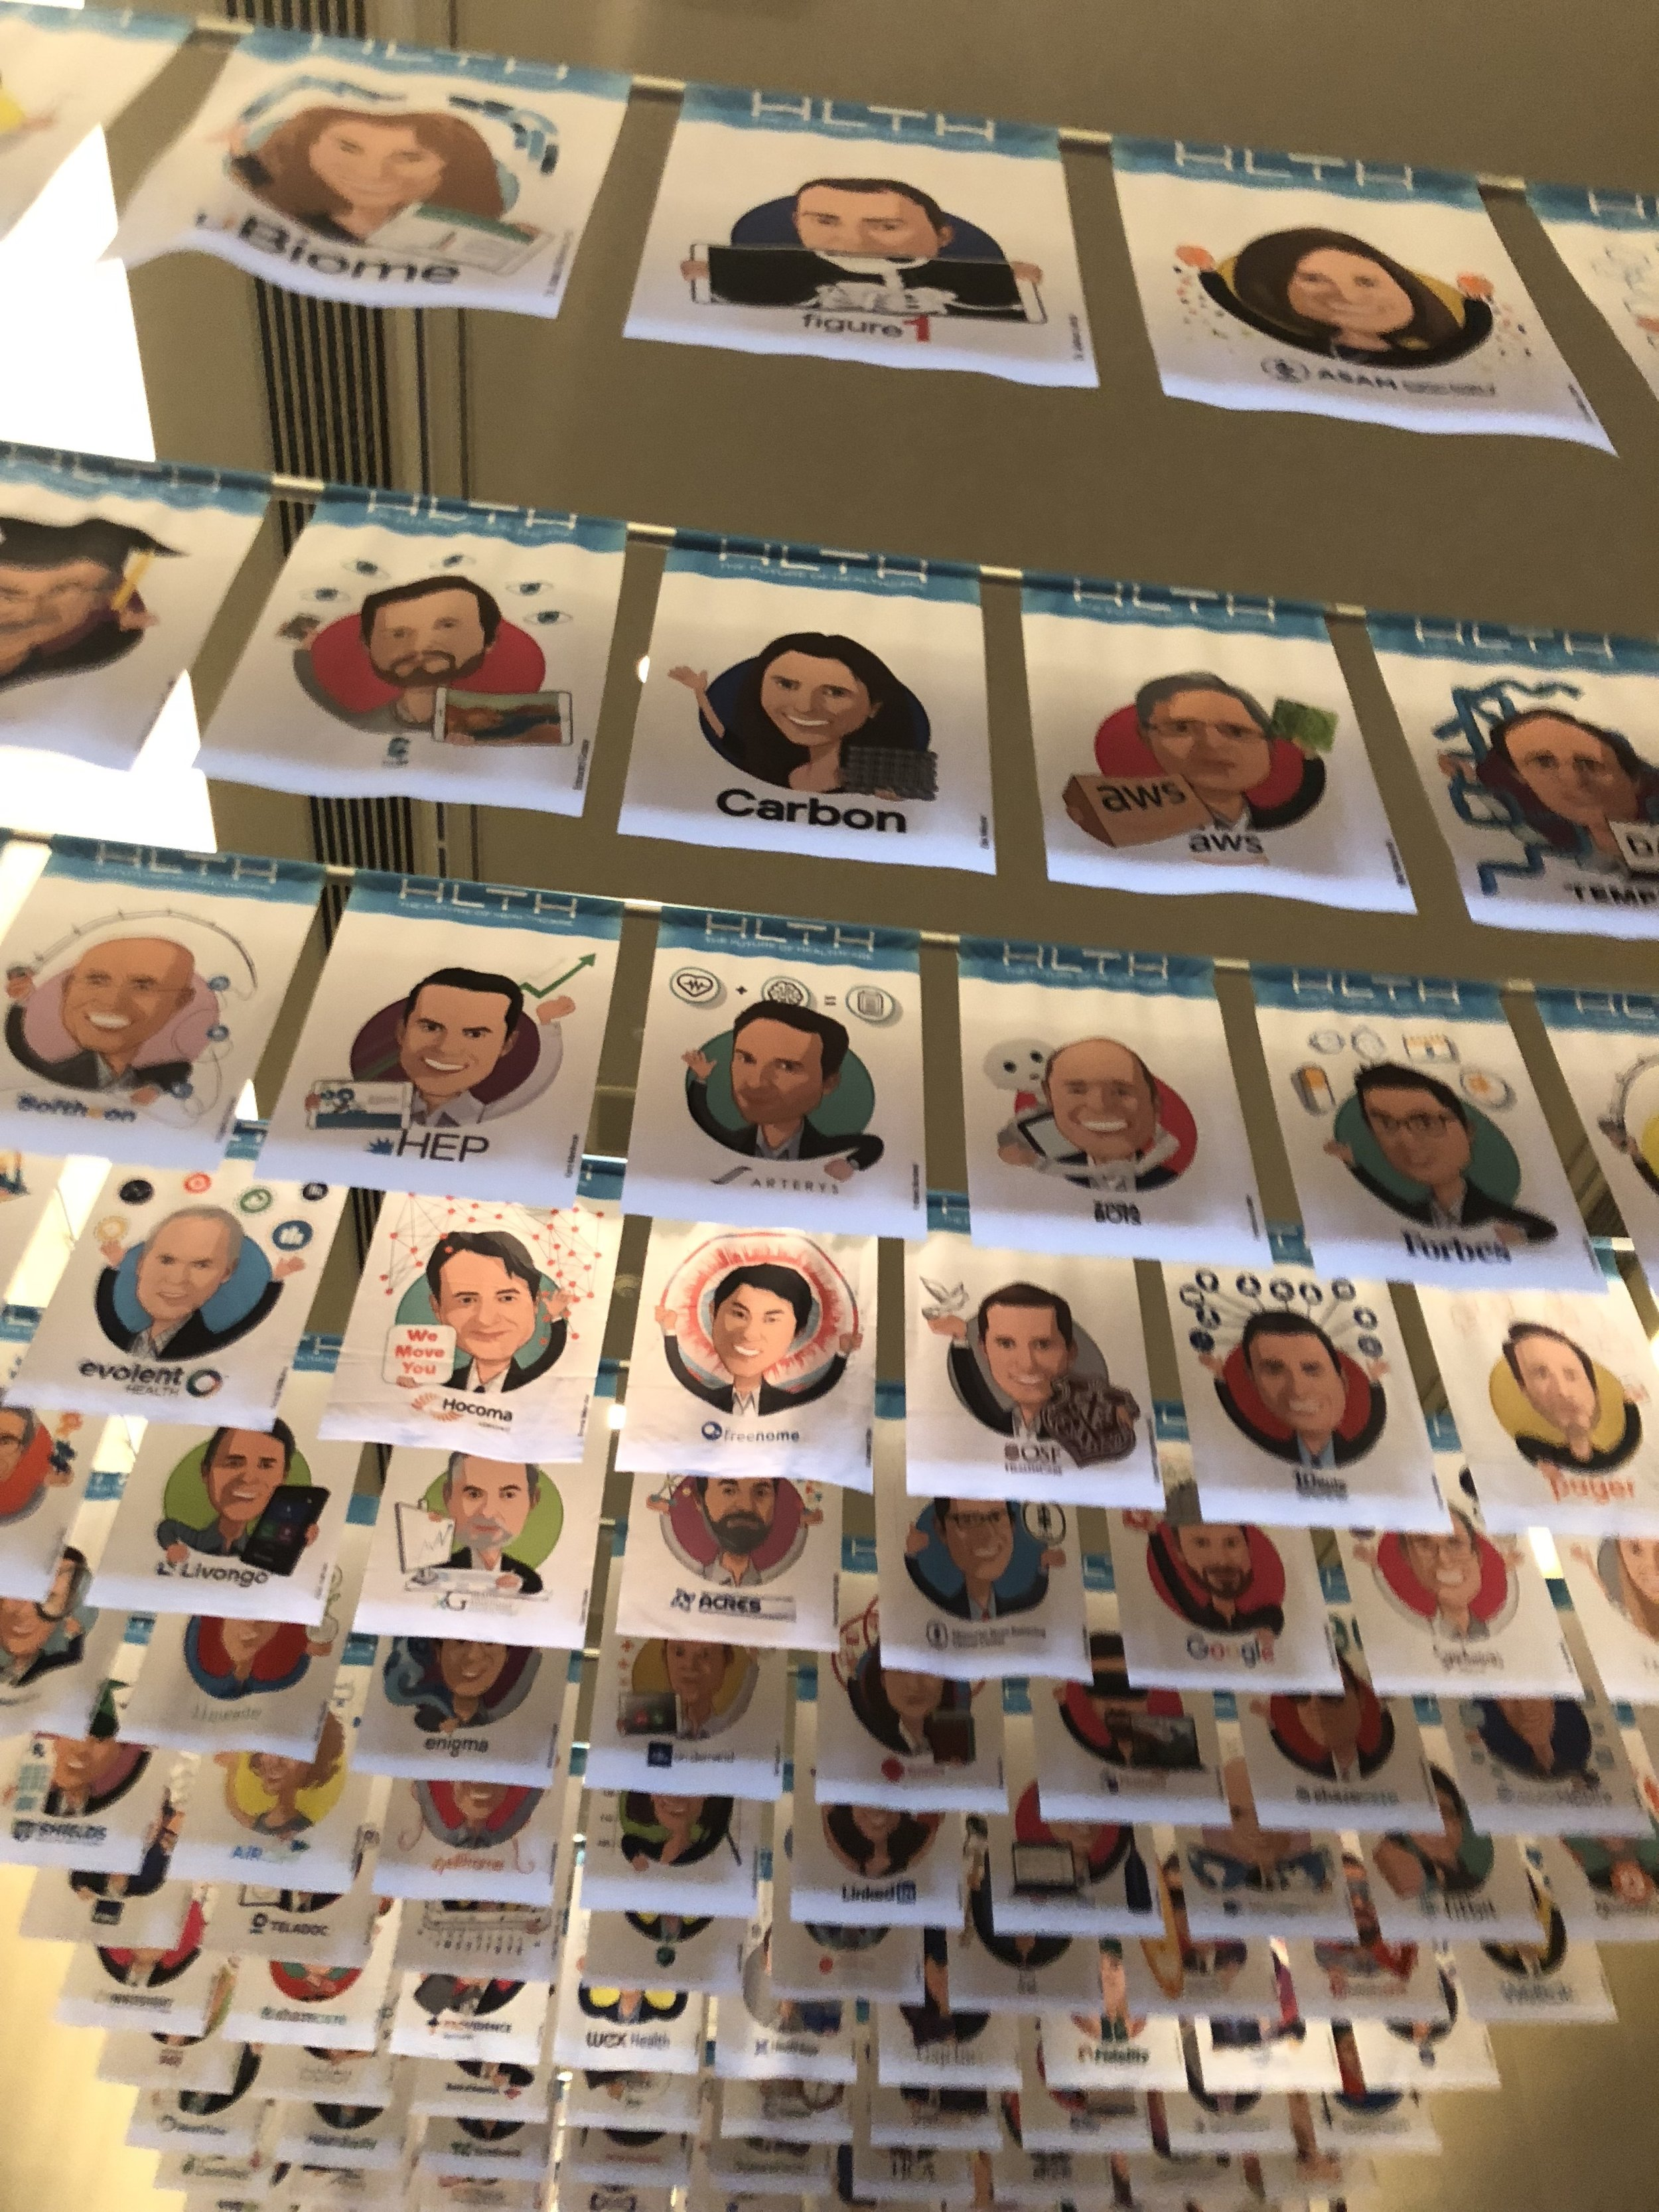 HLTH2018 General Session Hall carefully watched from above by speaker & sponsor avatars